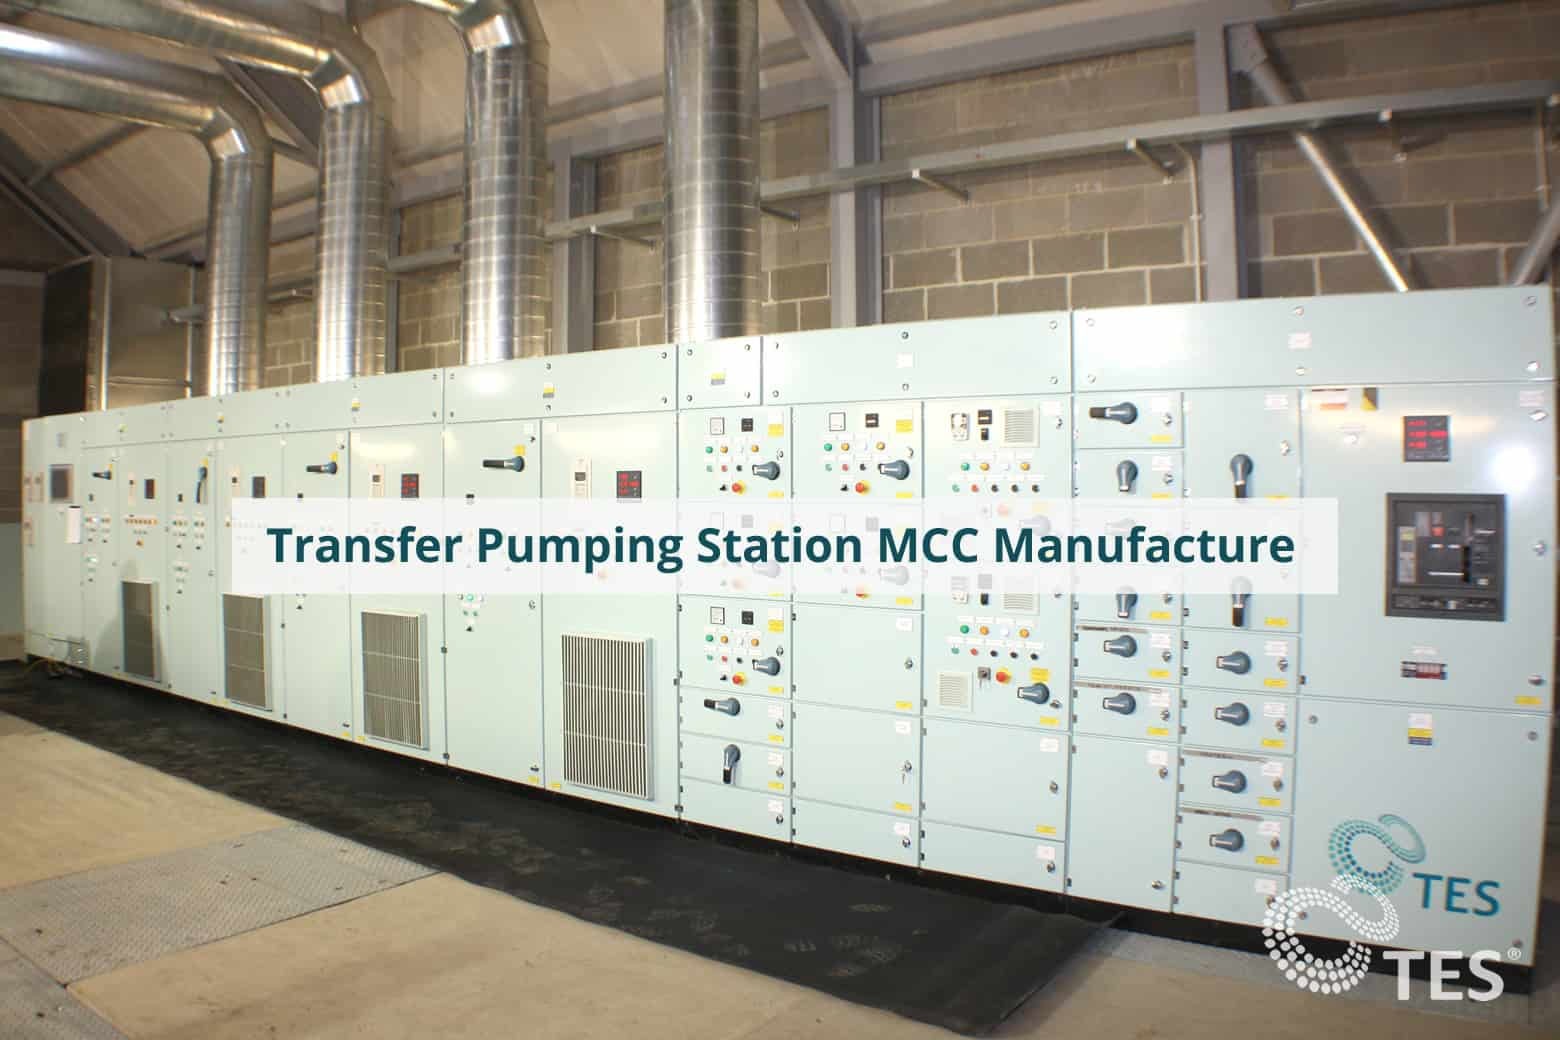 Transfer Pumping Station MCC Manufacture